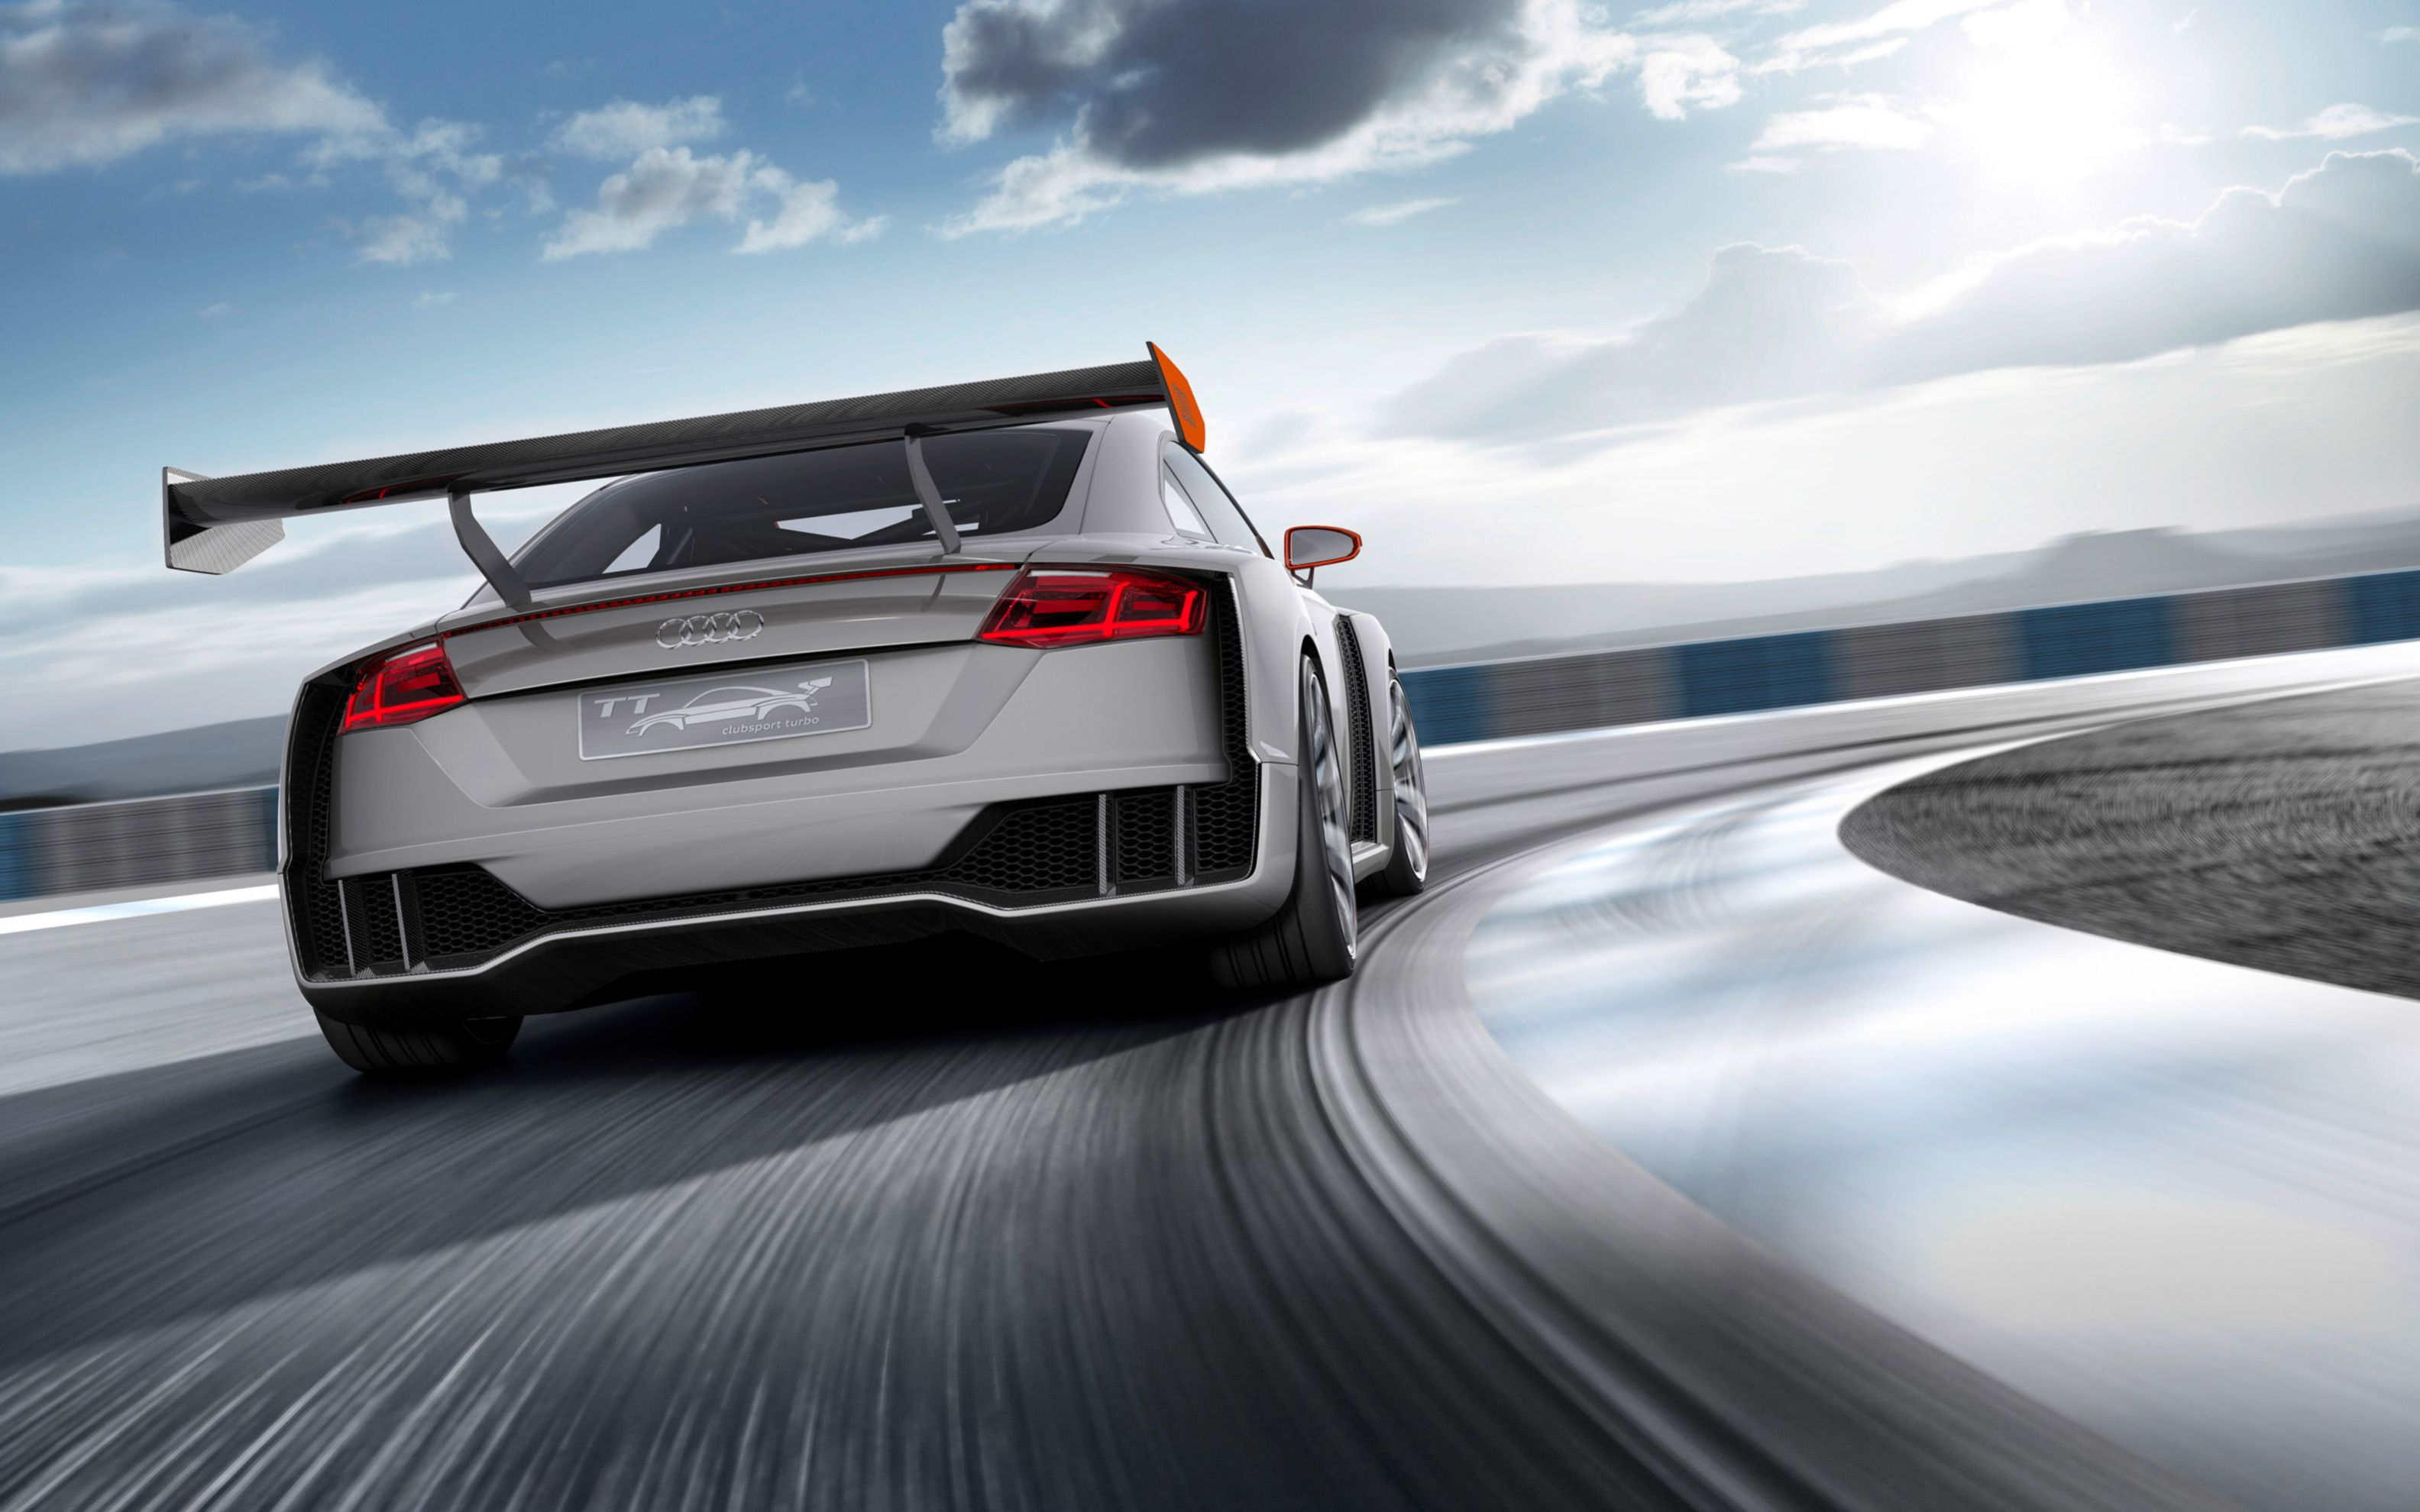 Download free HD Audi Tt ClubSport Turbo Concept 2015 Wide Wallpaper, image